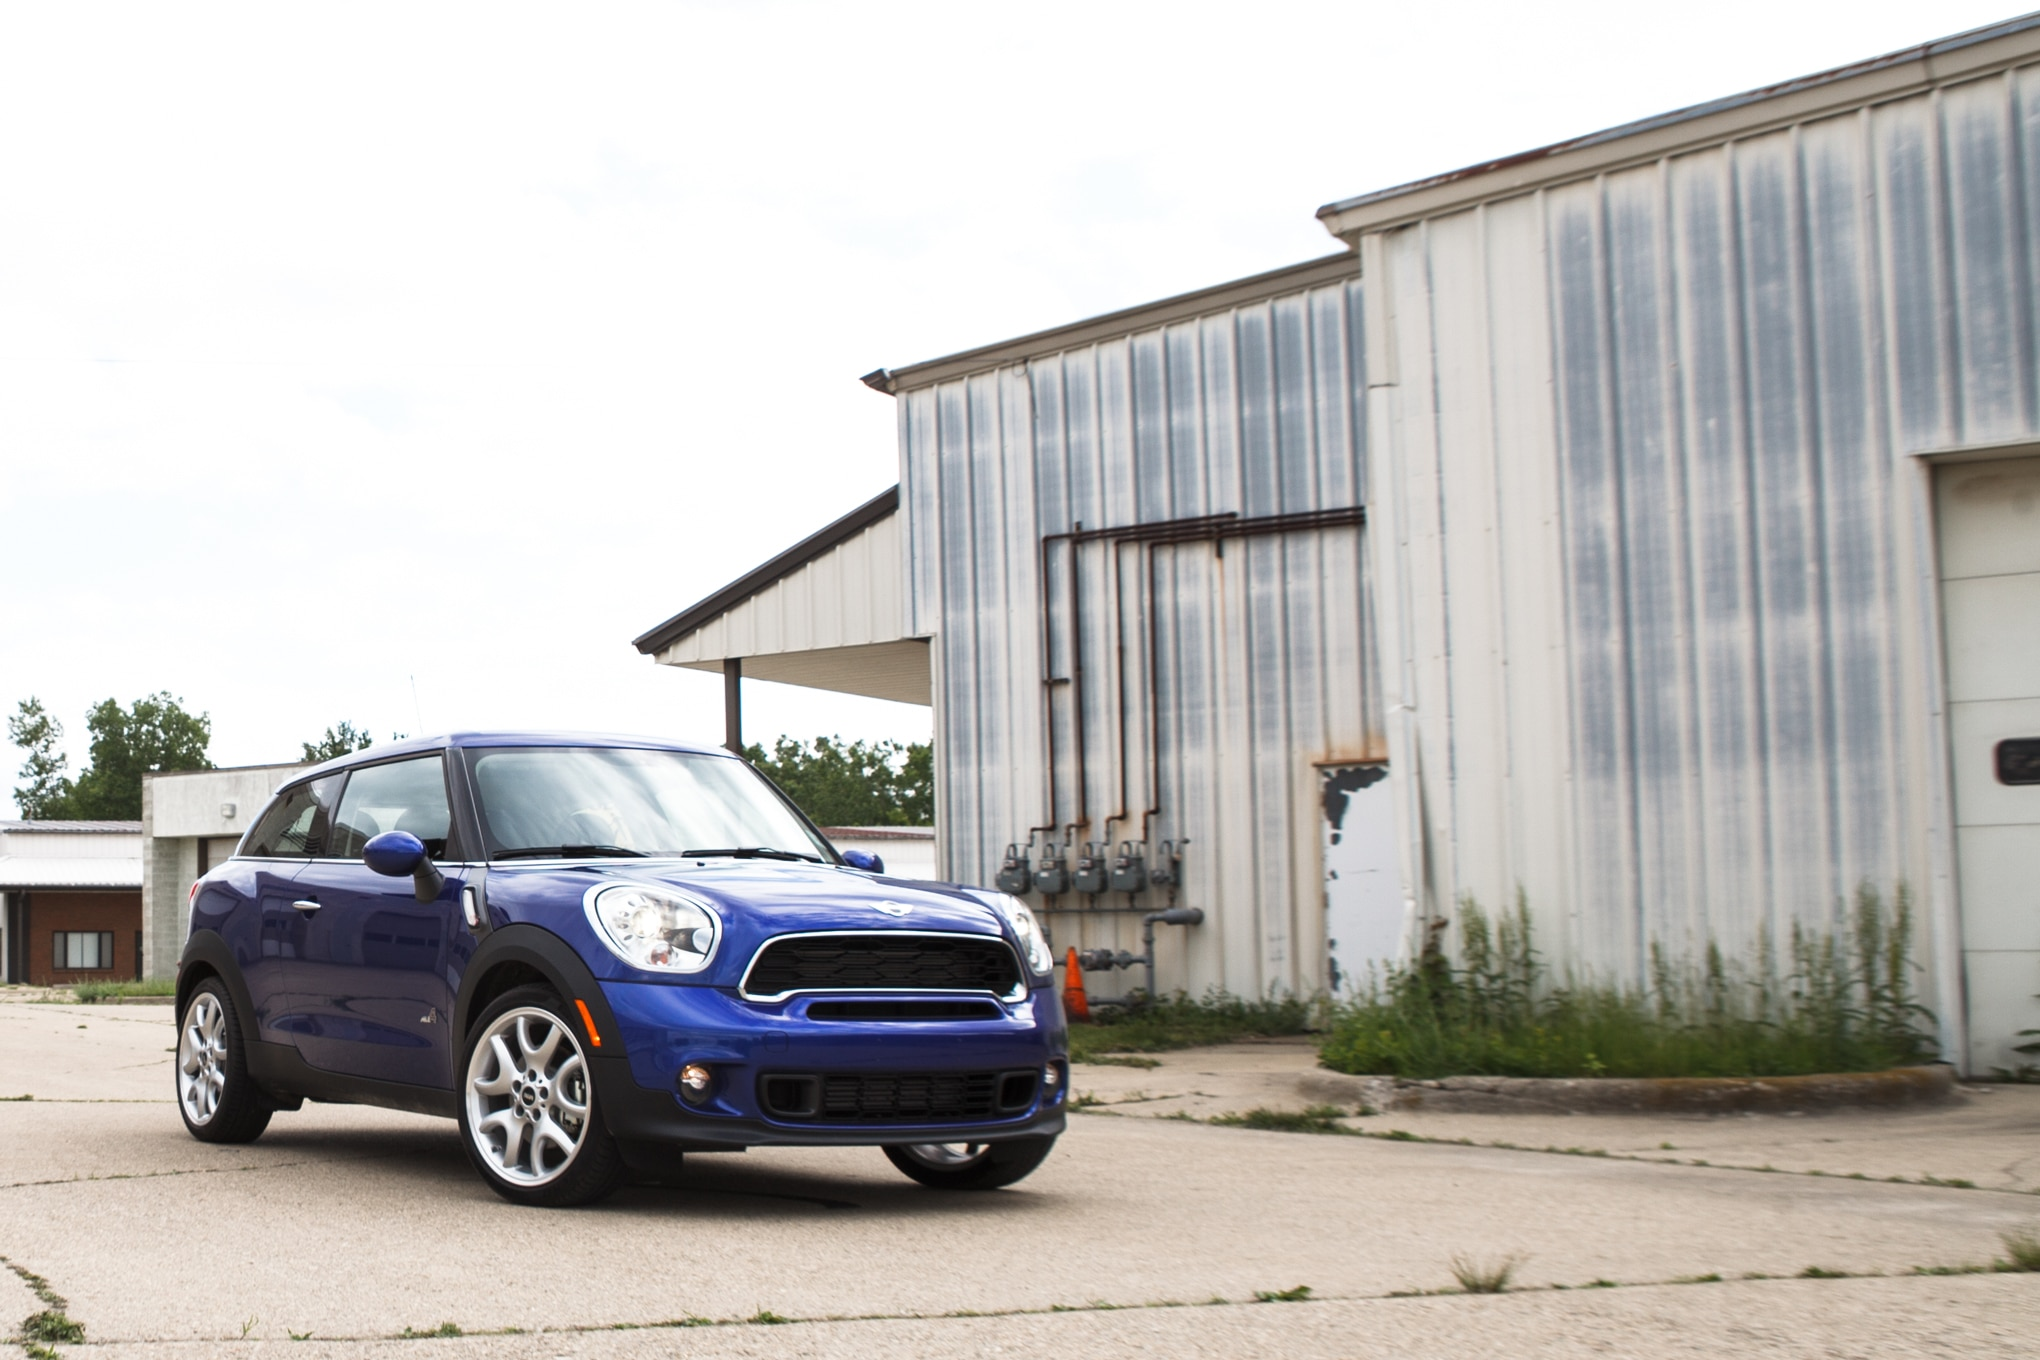 2013 Mini Cooper Paceman S Front Right View 11